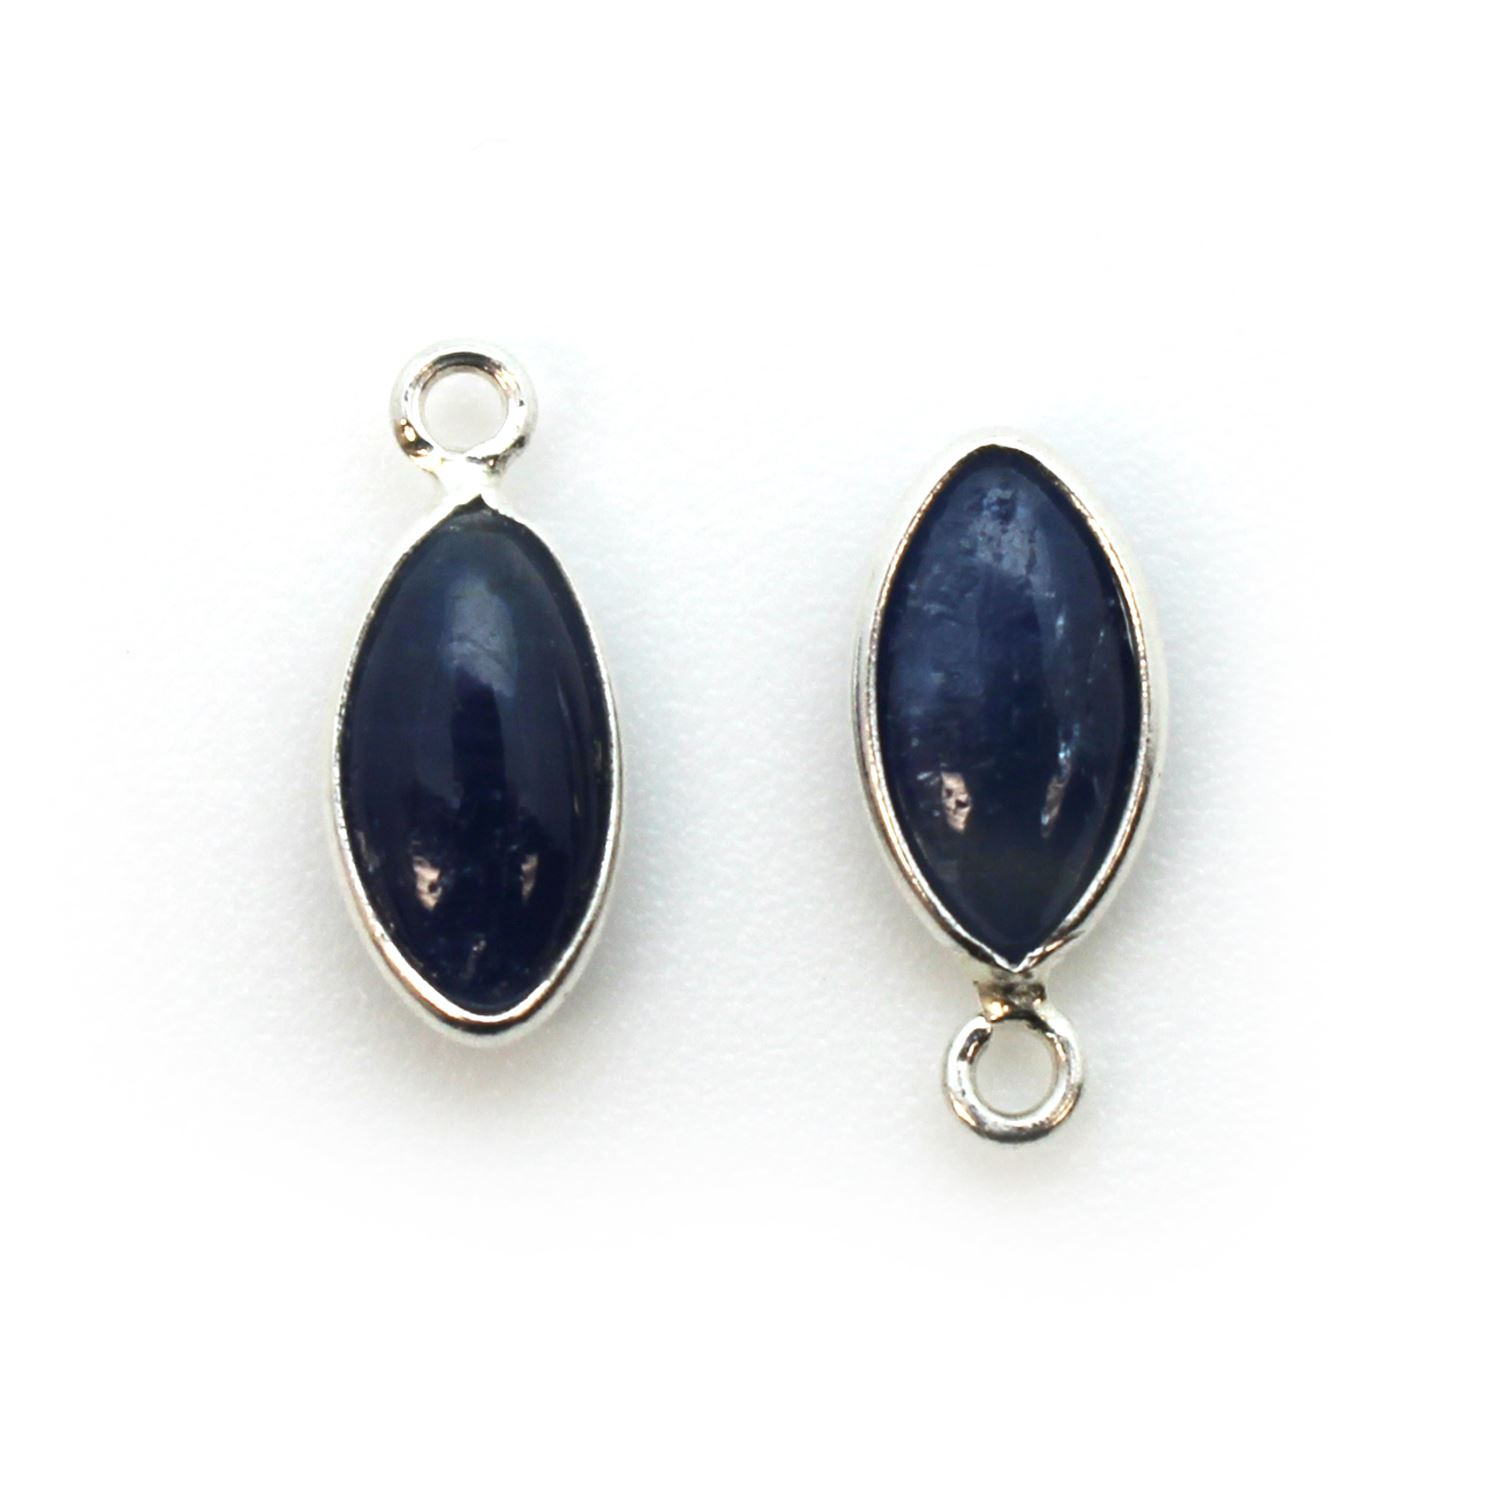 Bezel Charm Pendant - Sterling Silver Charm - Natural Blue Sapphire - Tiny Marquise Shape -6x13mm